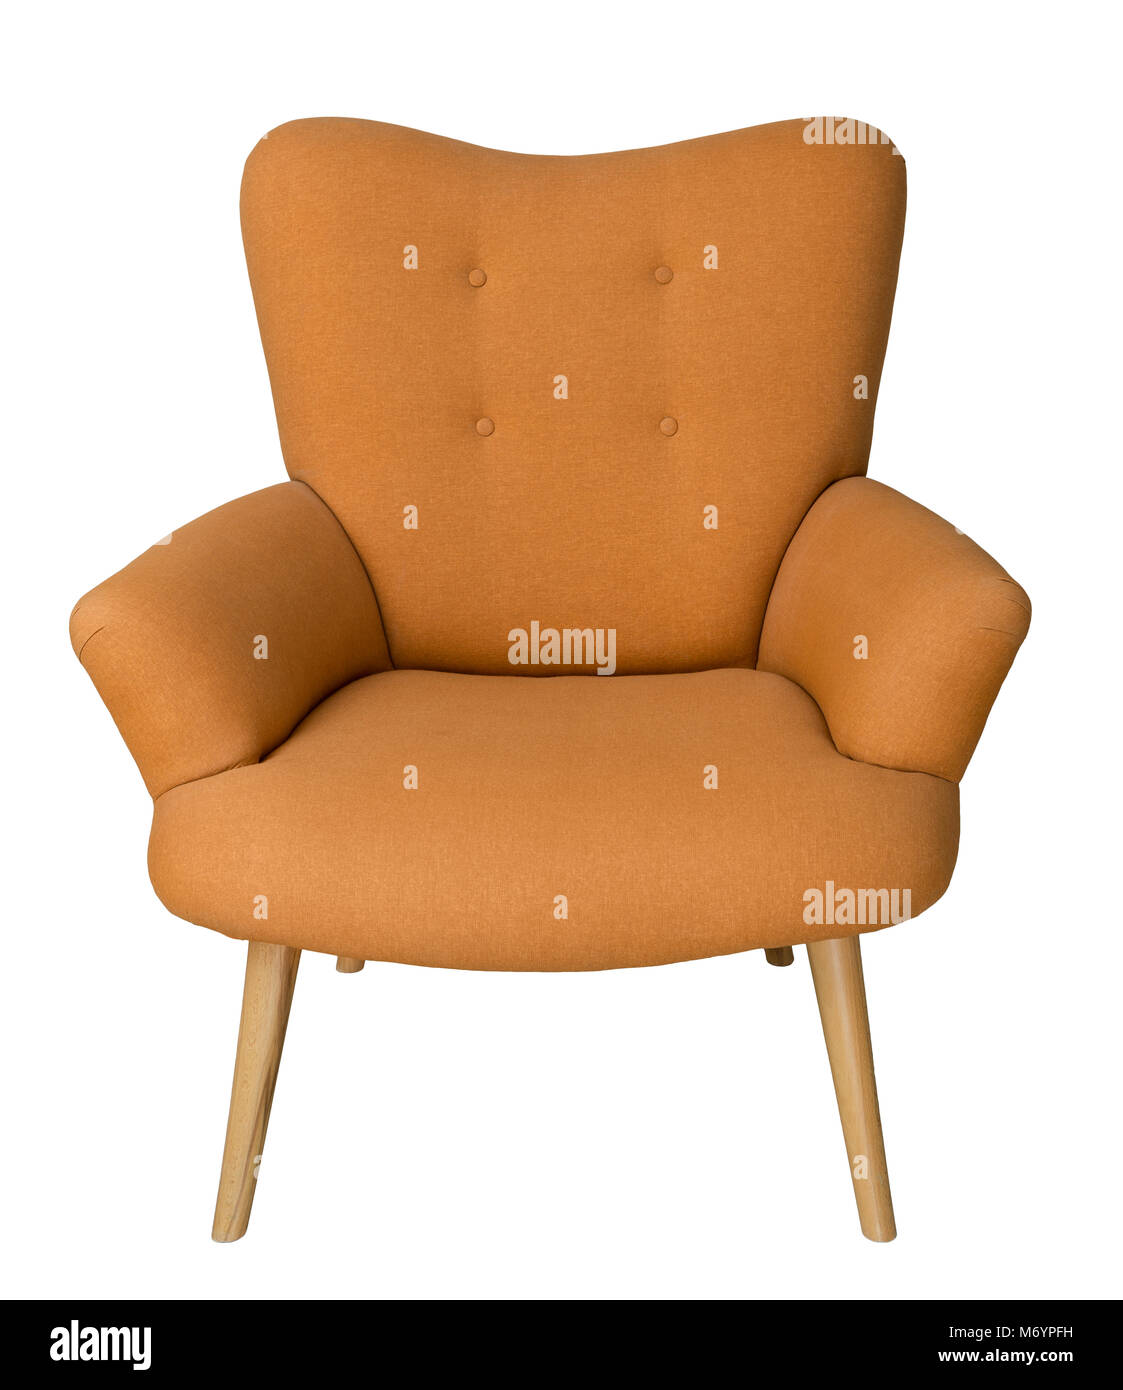 Vintage Furniture: French orange wingback armchair with wooden legs isolated on white background including clipping - Stock Image